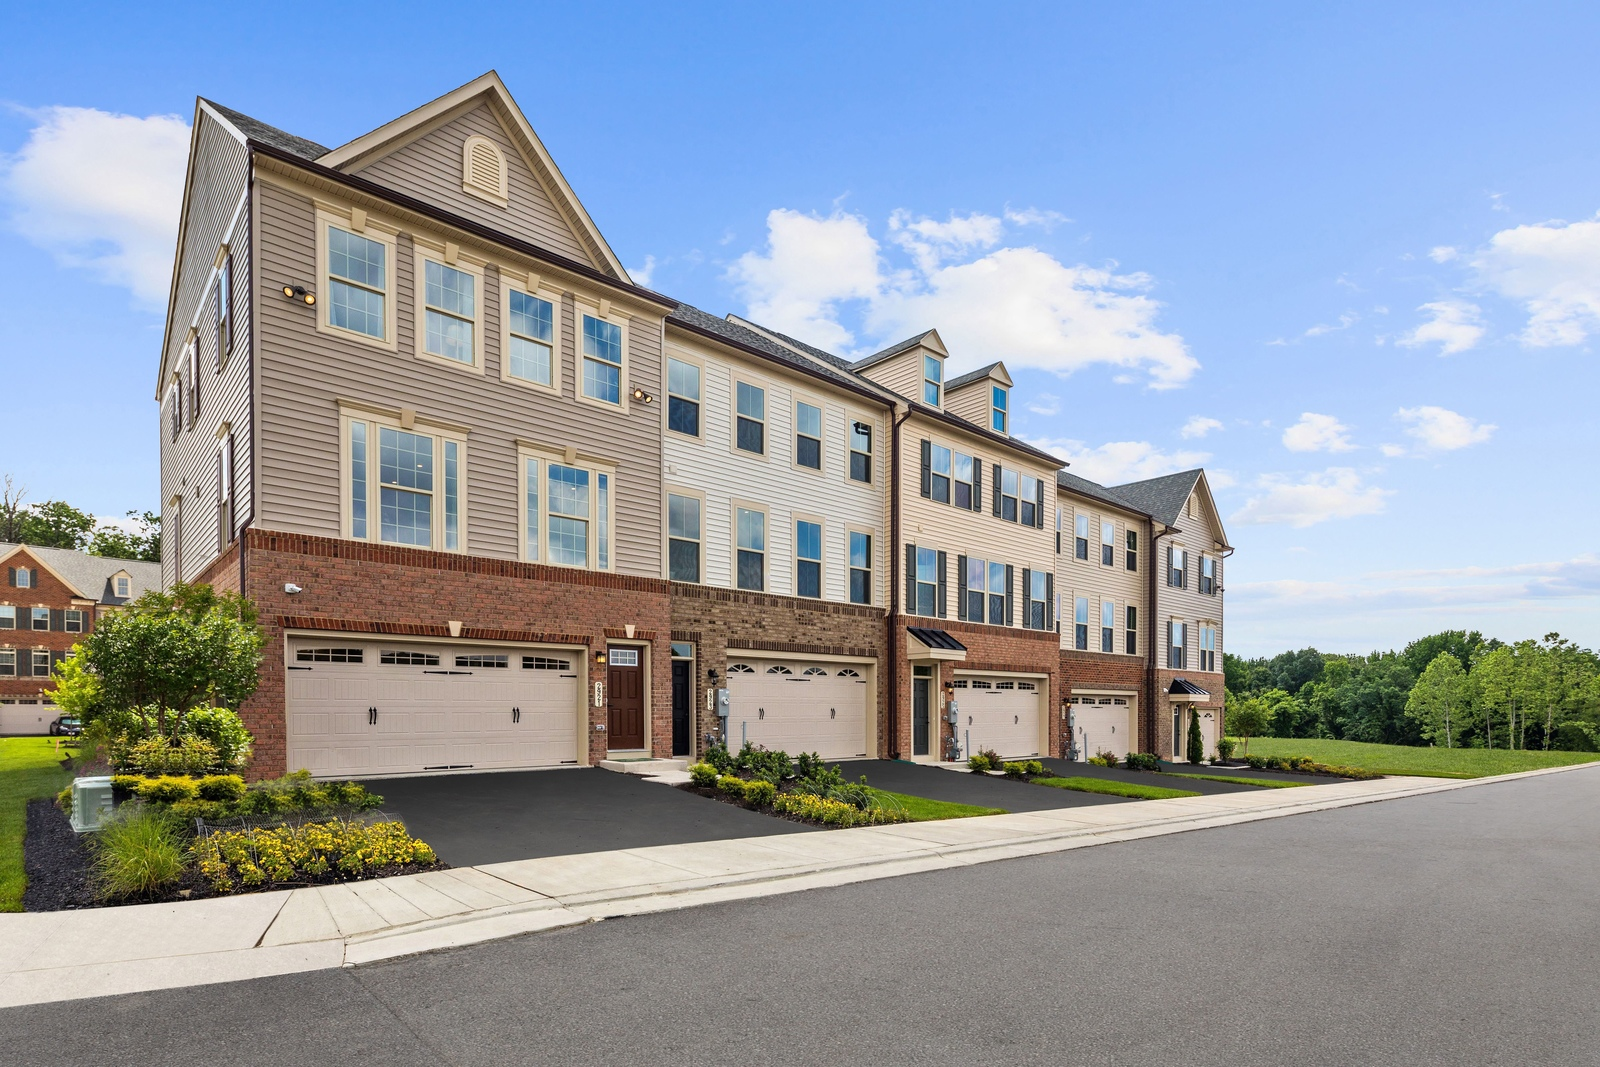 Parkside 3 Bedroom Townhomes with Garage